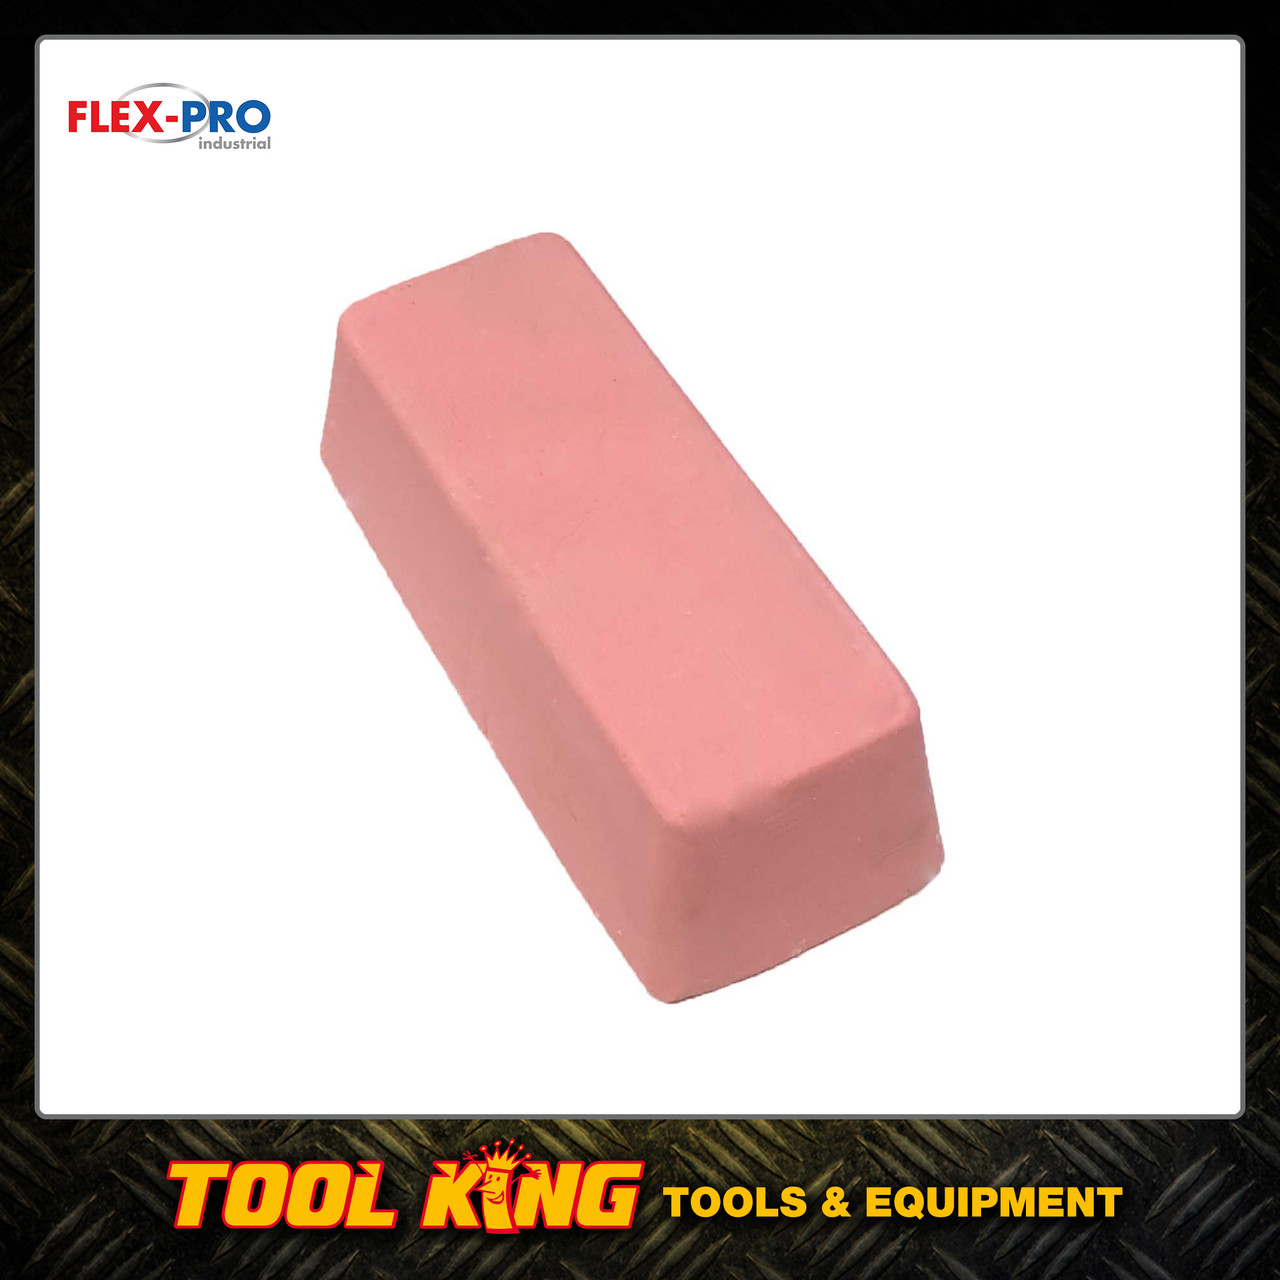 Polishing compound alloy bull bars and tanks etc PINK 410gm